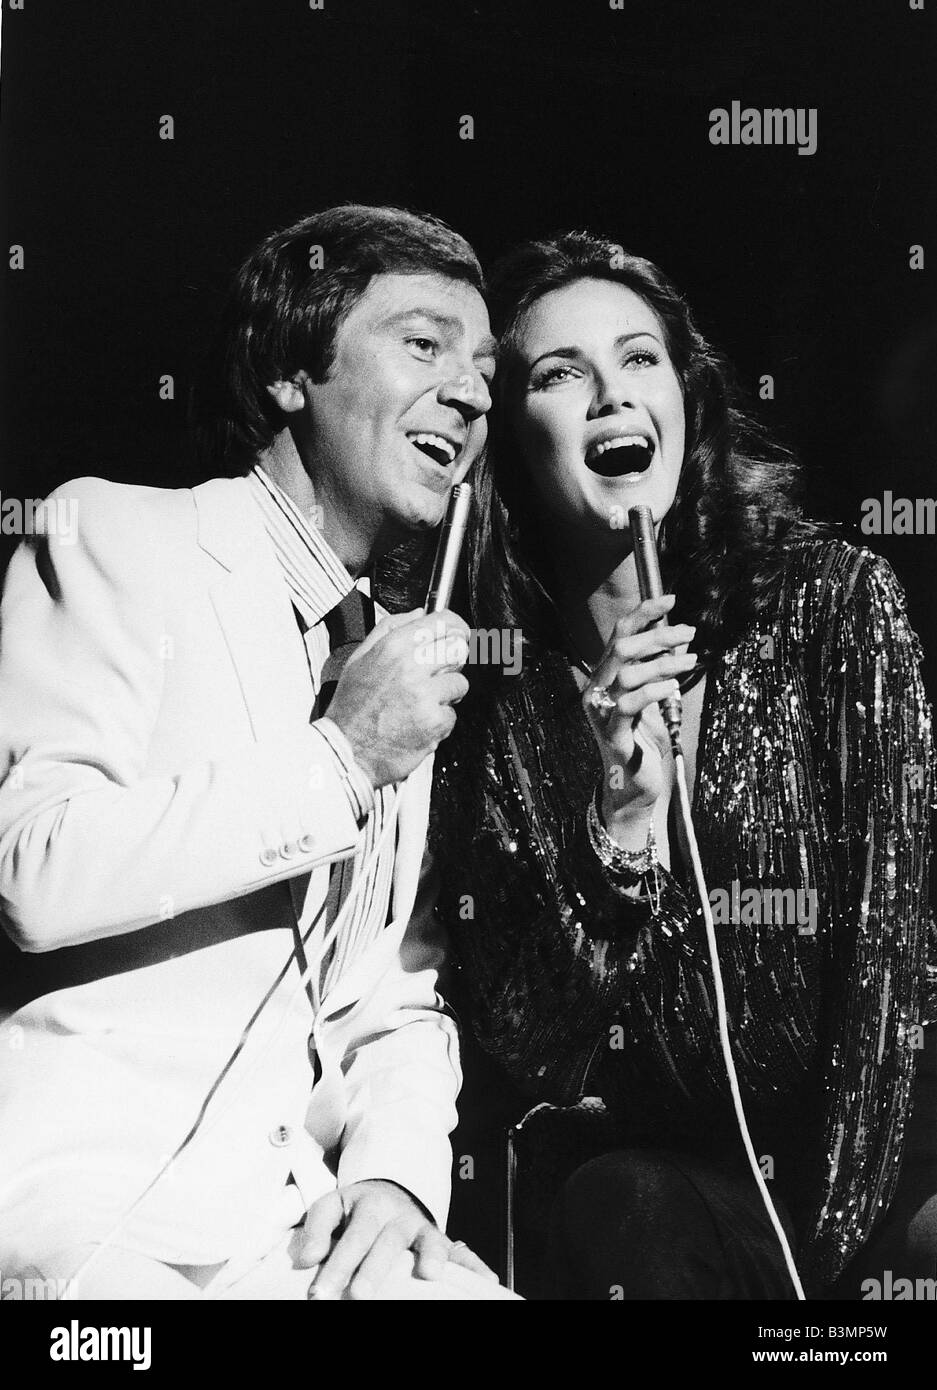 Des O Connor TV Presenter Comedian in singing duet with Lynda Carter on his BBC show - Stock Image